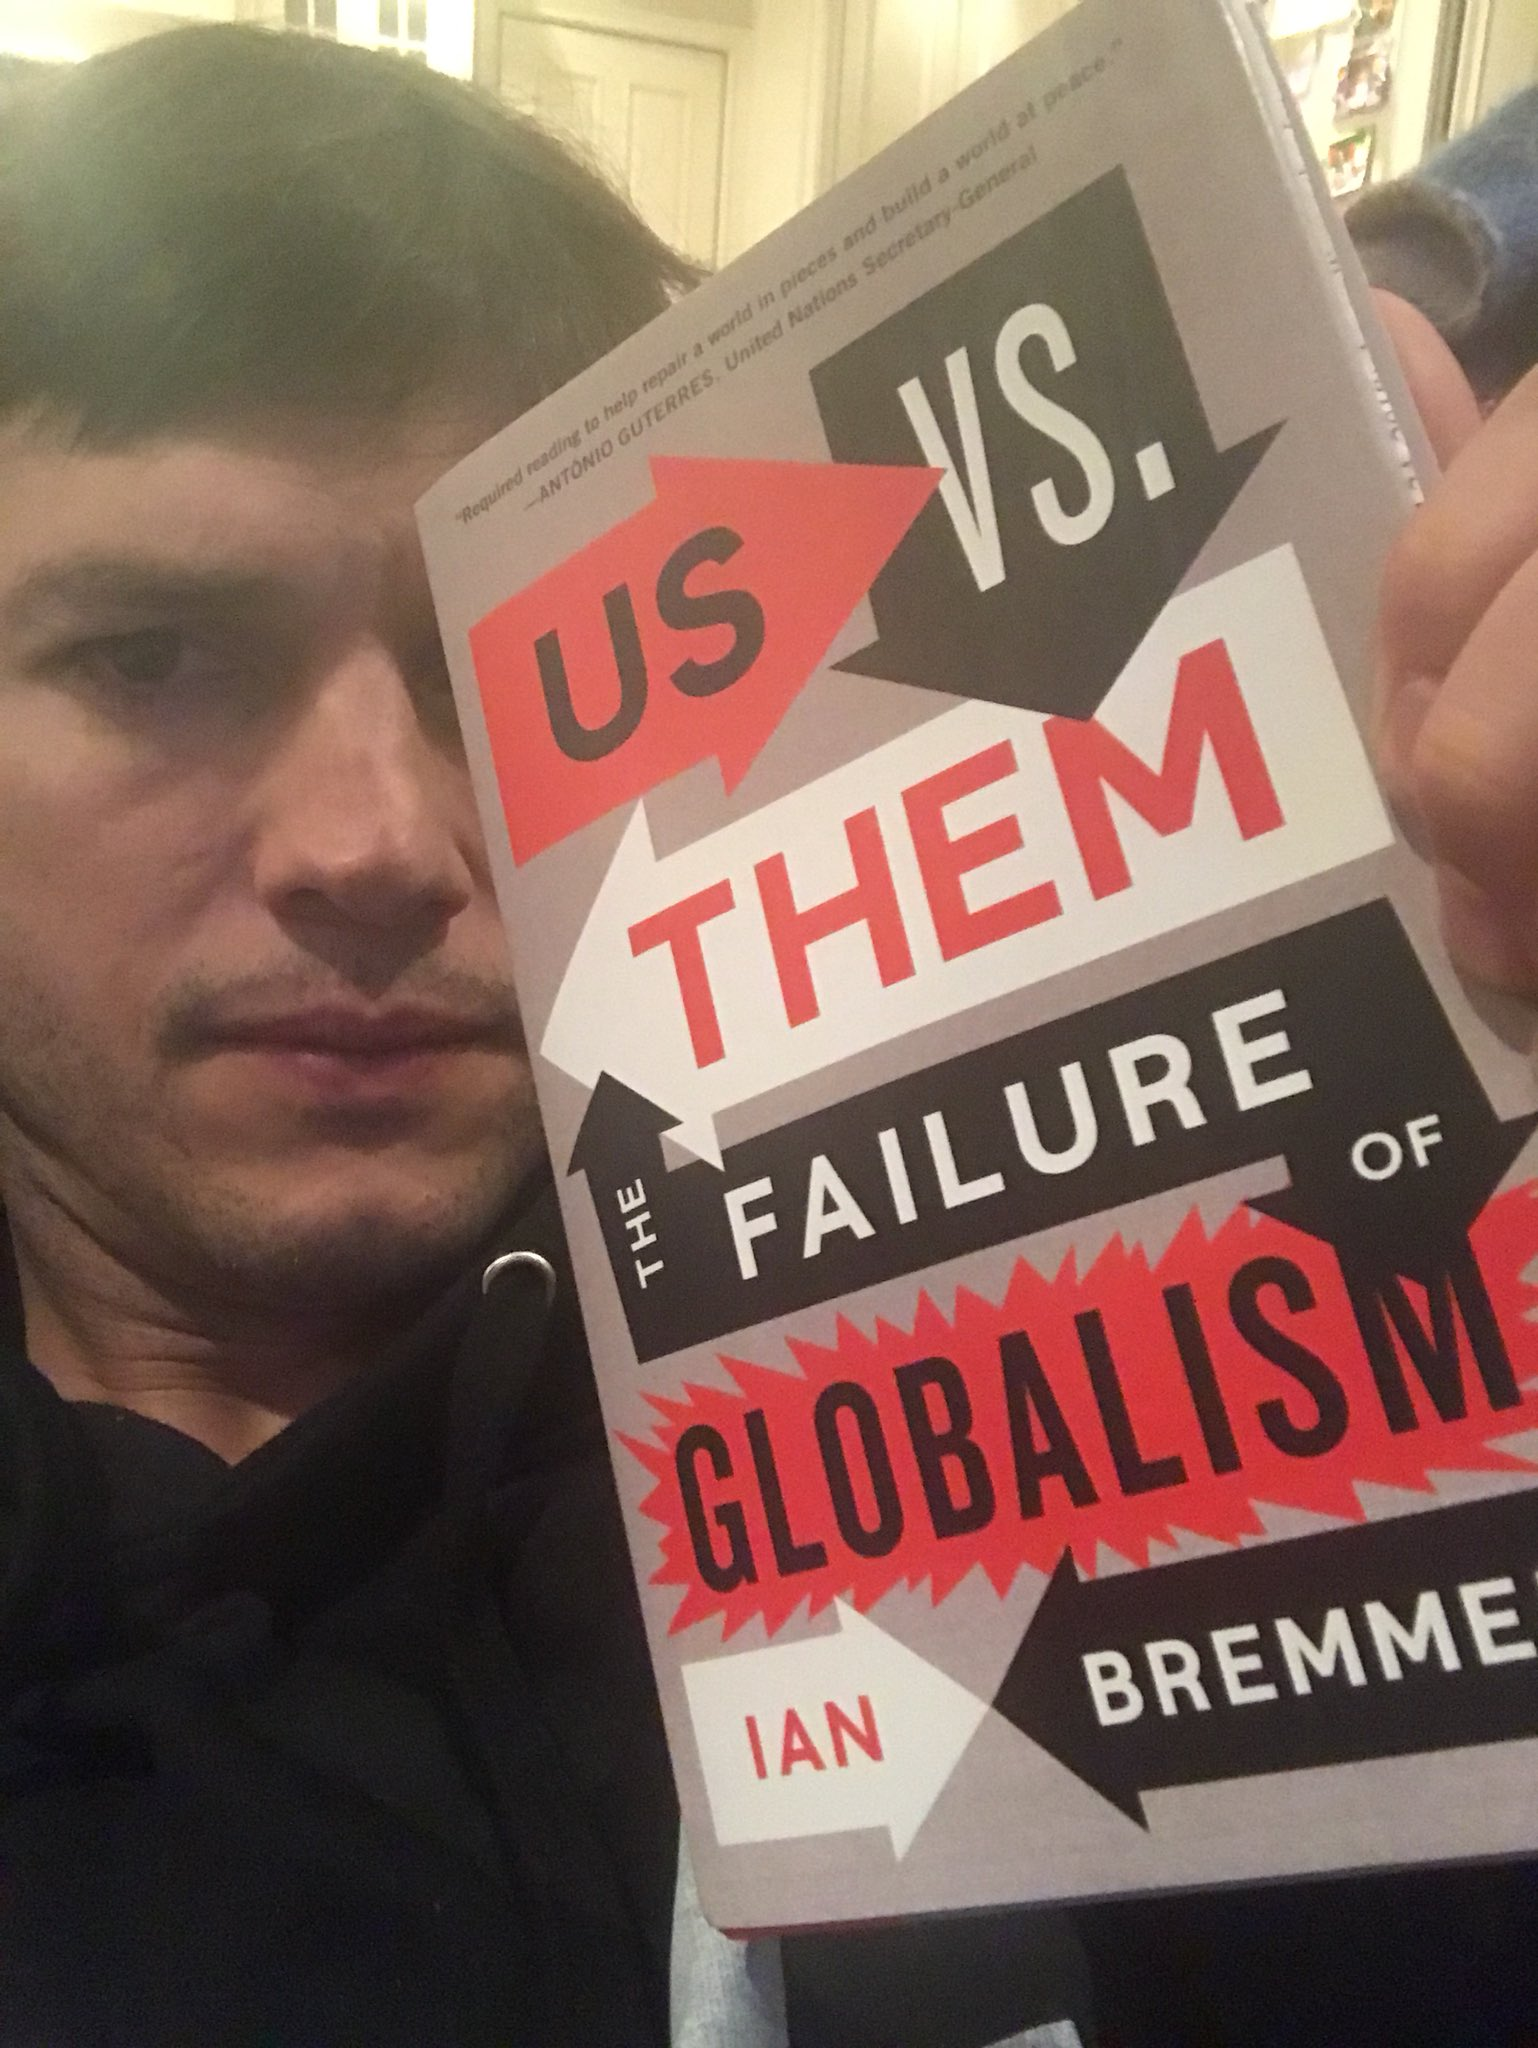 Ripping into this Badboy tonight. Let's hope @ianbremmer predicts a we.  �� https://t.co/kpw1dMoBYg